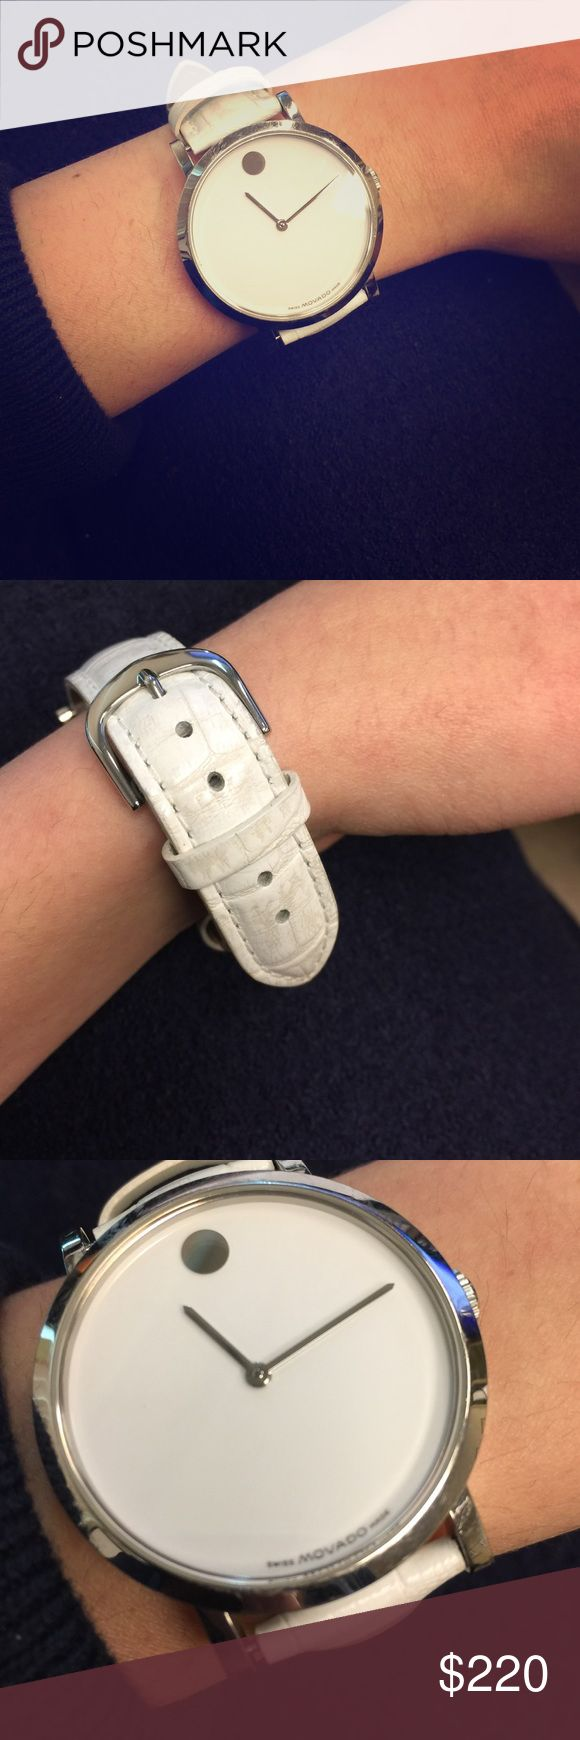 Authentic white movado big faced watch 💯 % authentic movado watch! Jewelry